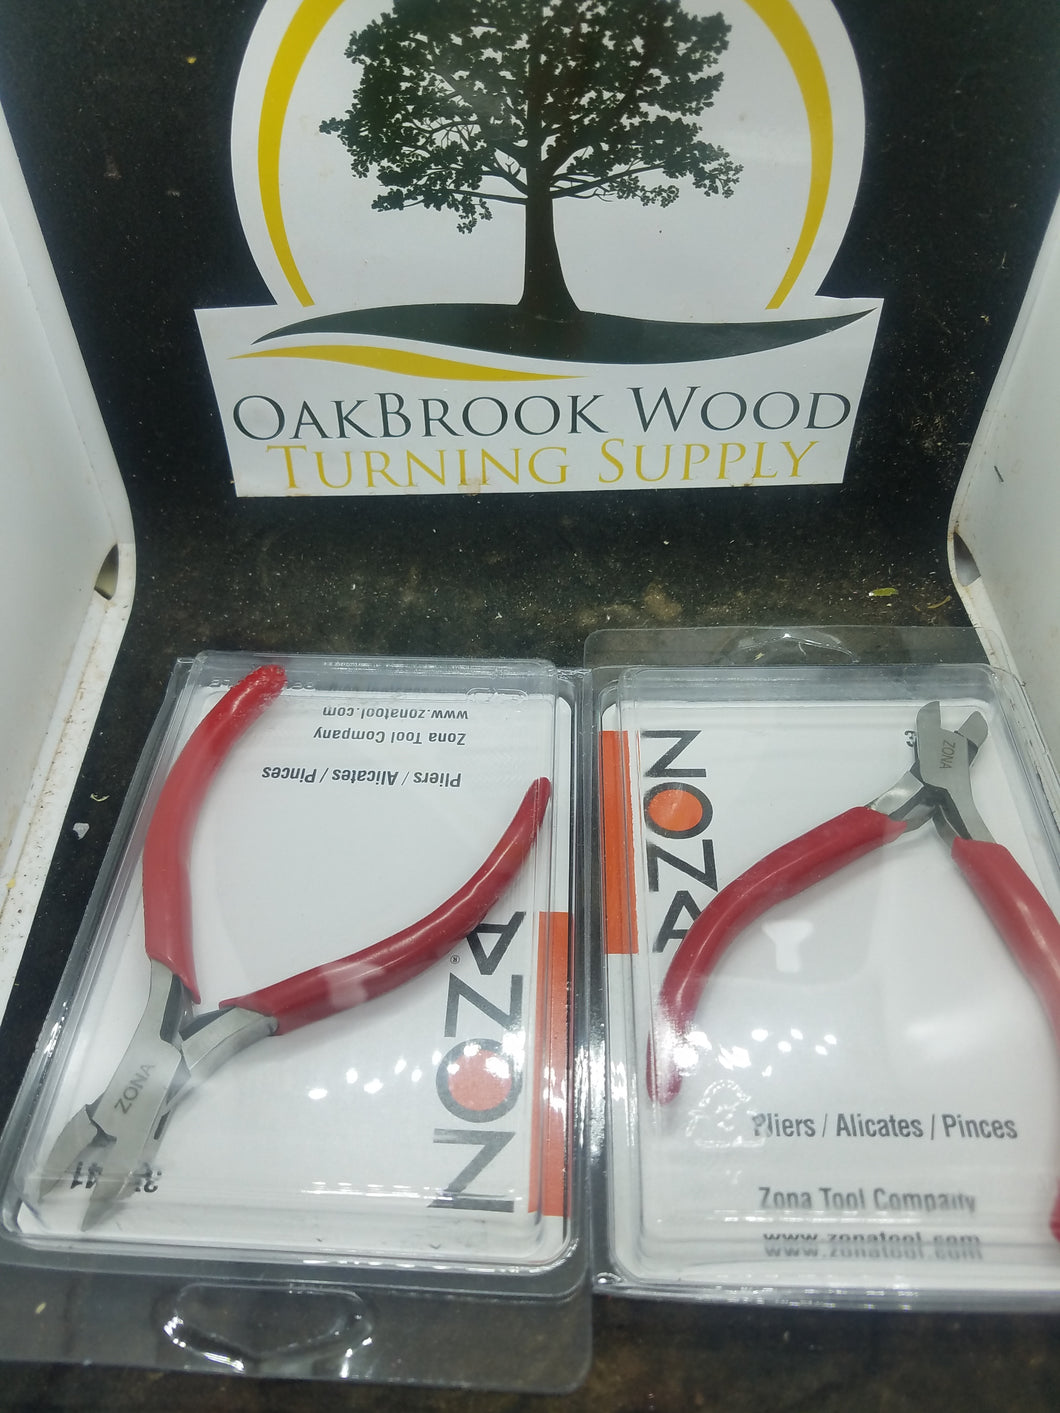 Zona diagonal cutting pliers - Oakbrook Wood Turning Supply